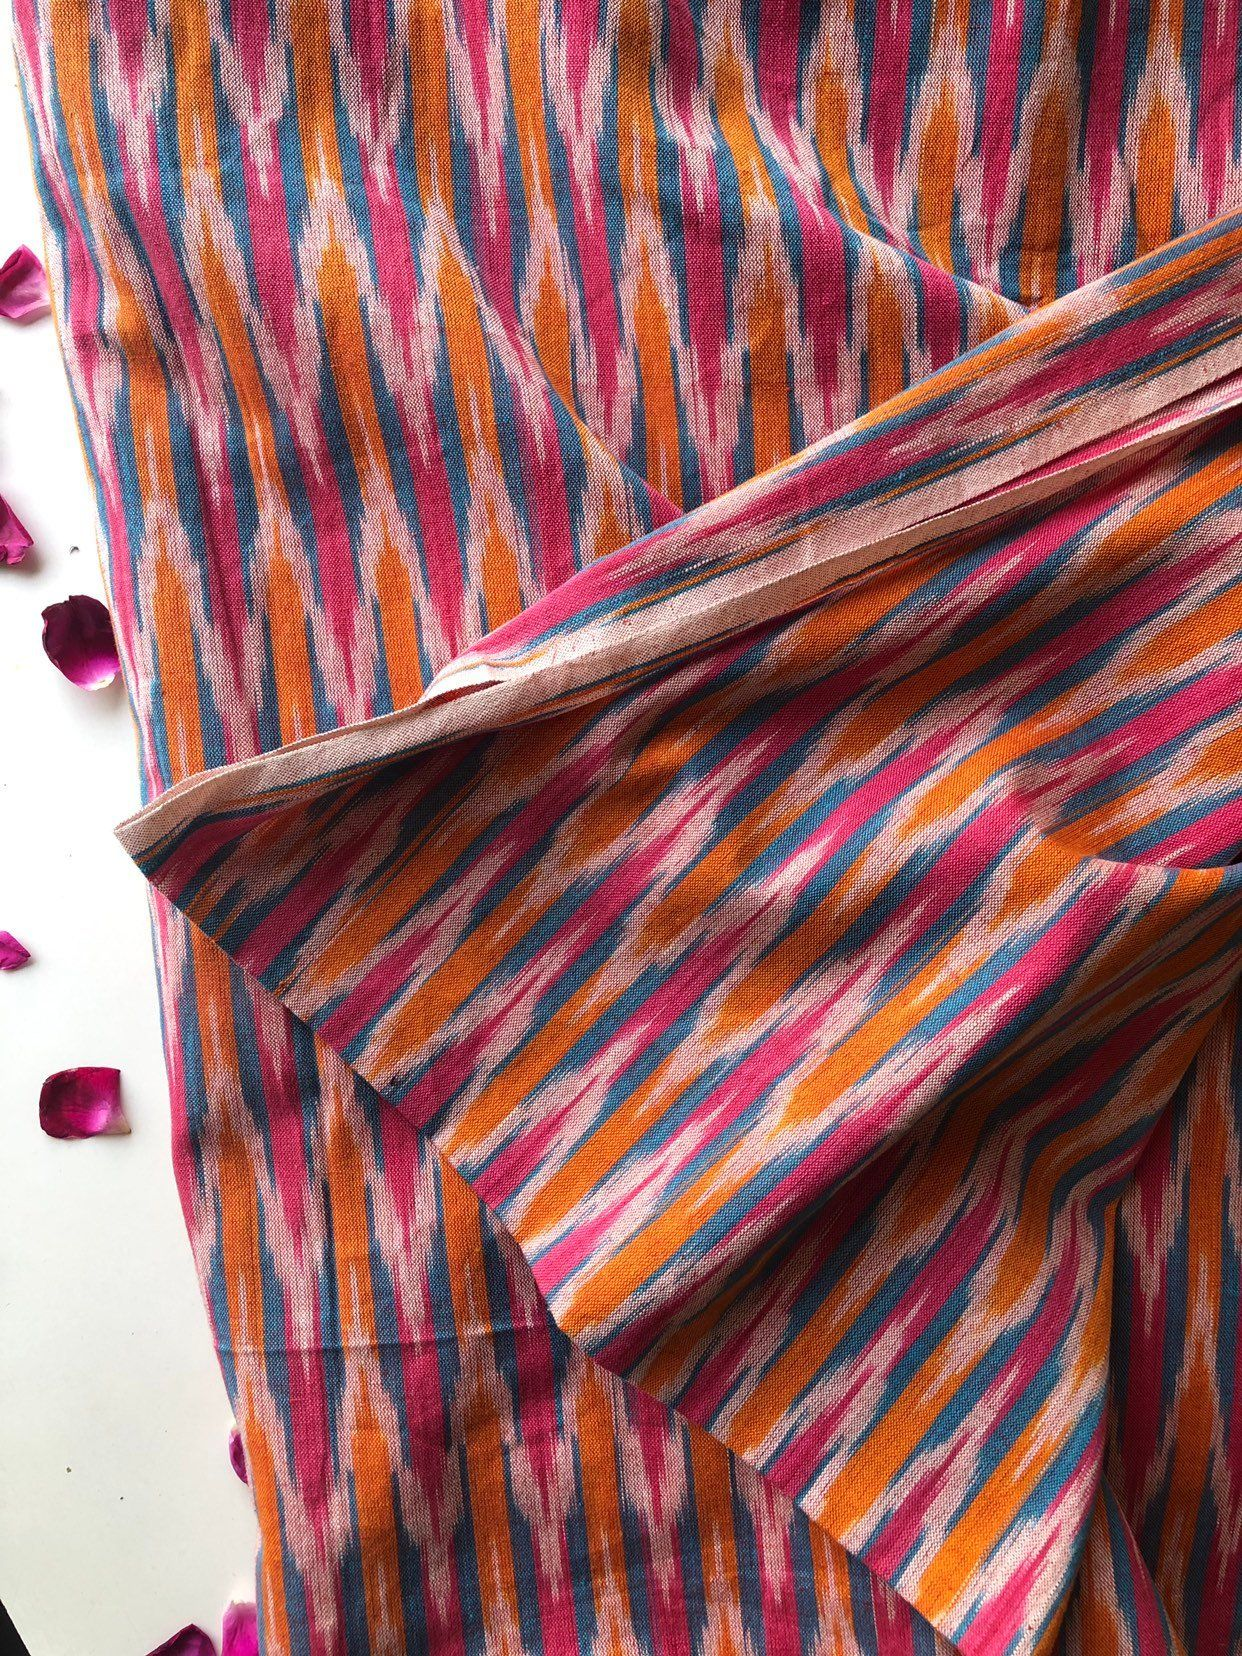 Fabric by the Yard 42/'/' Width Pink Ikat Pure Silk Fabric Indian Silk Fabric Dress Fabric Boho Fabric Indian Fabric